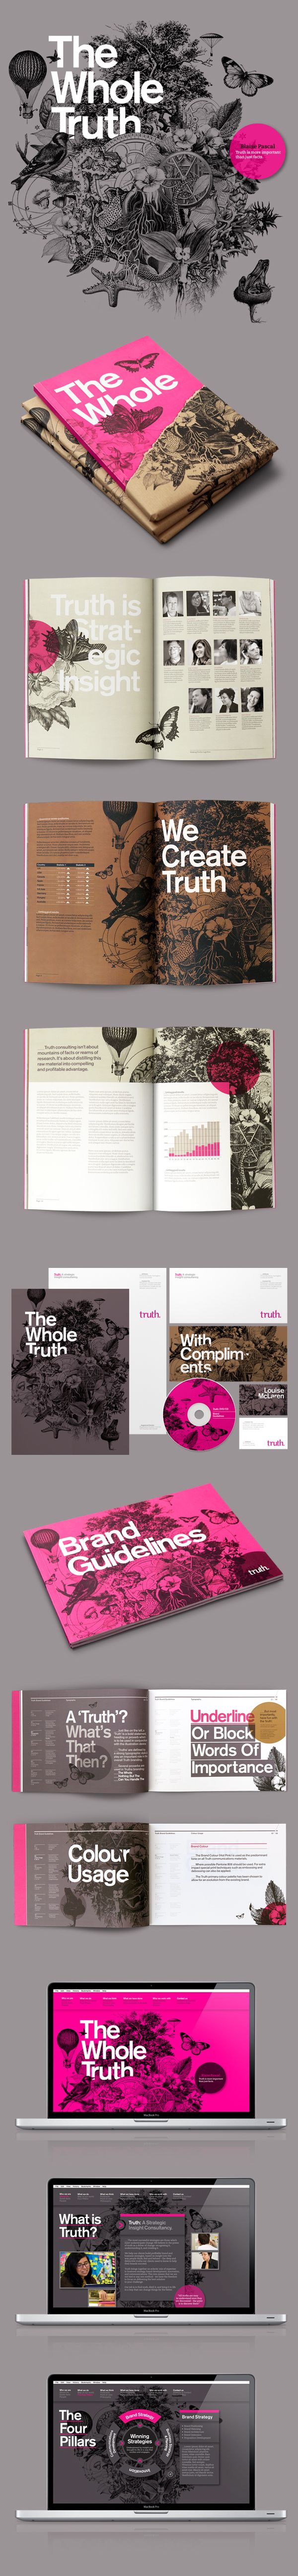 Truth Branding by Socio Design